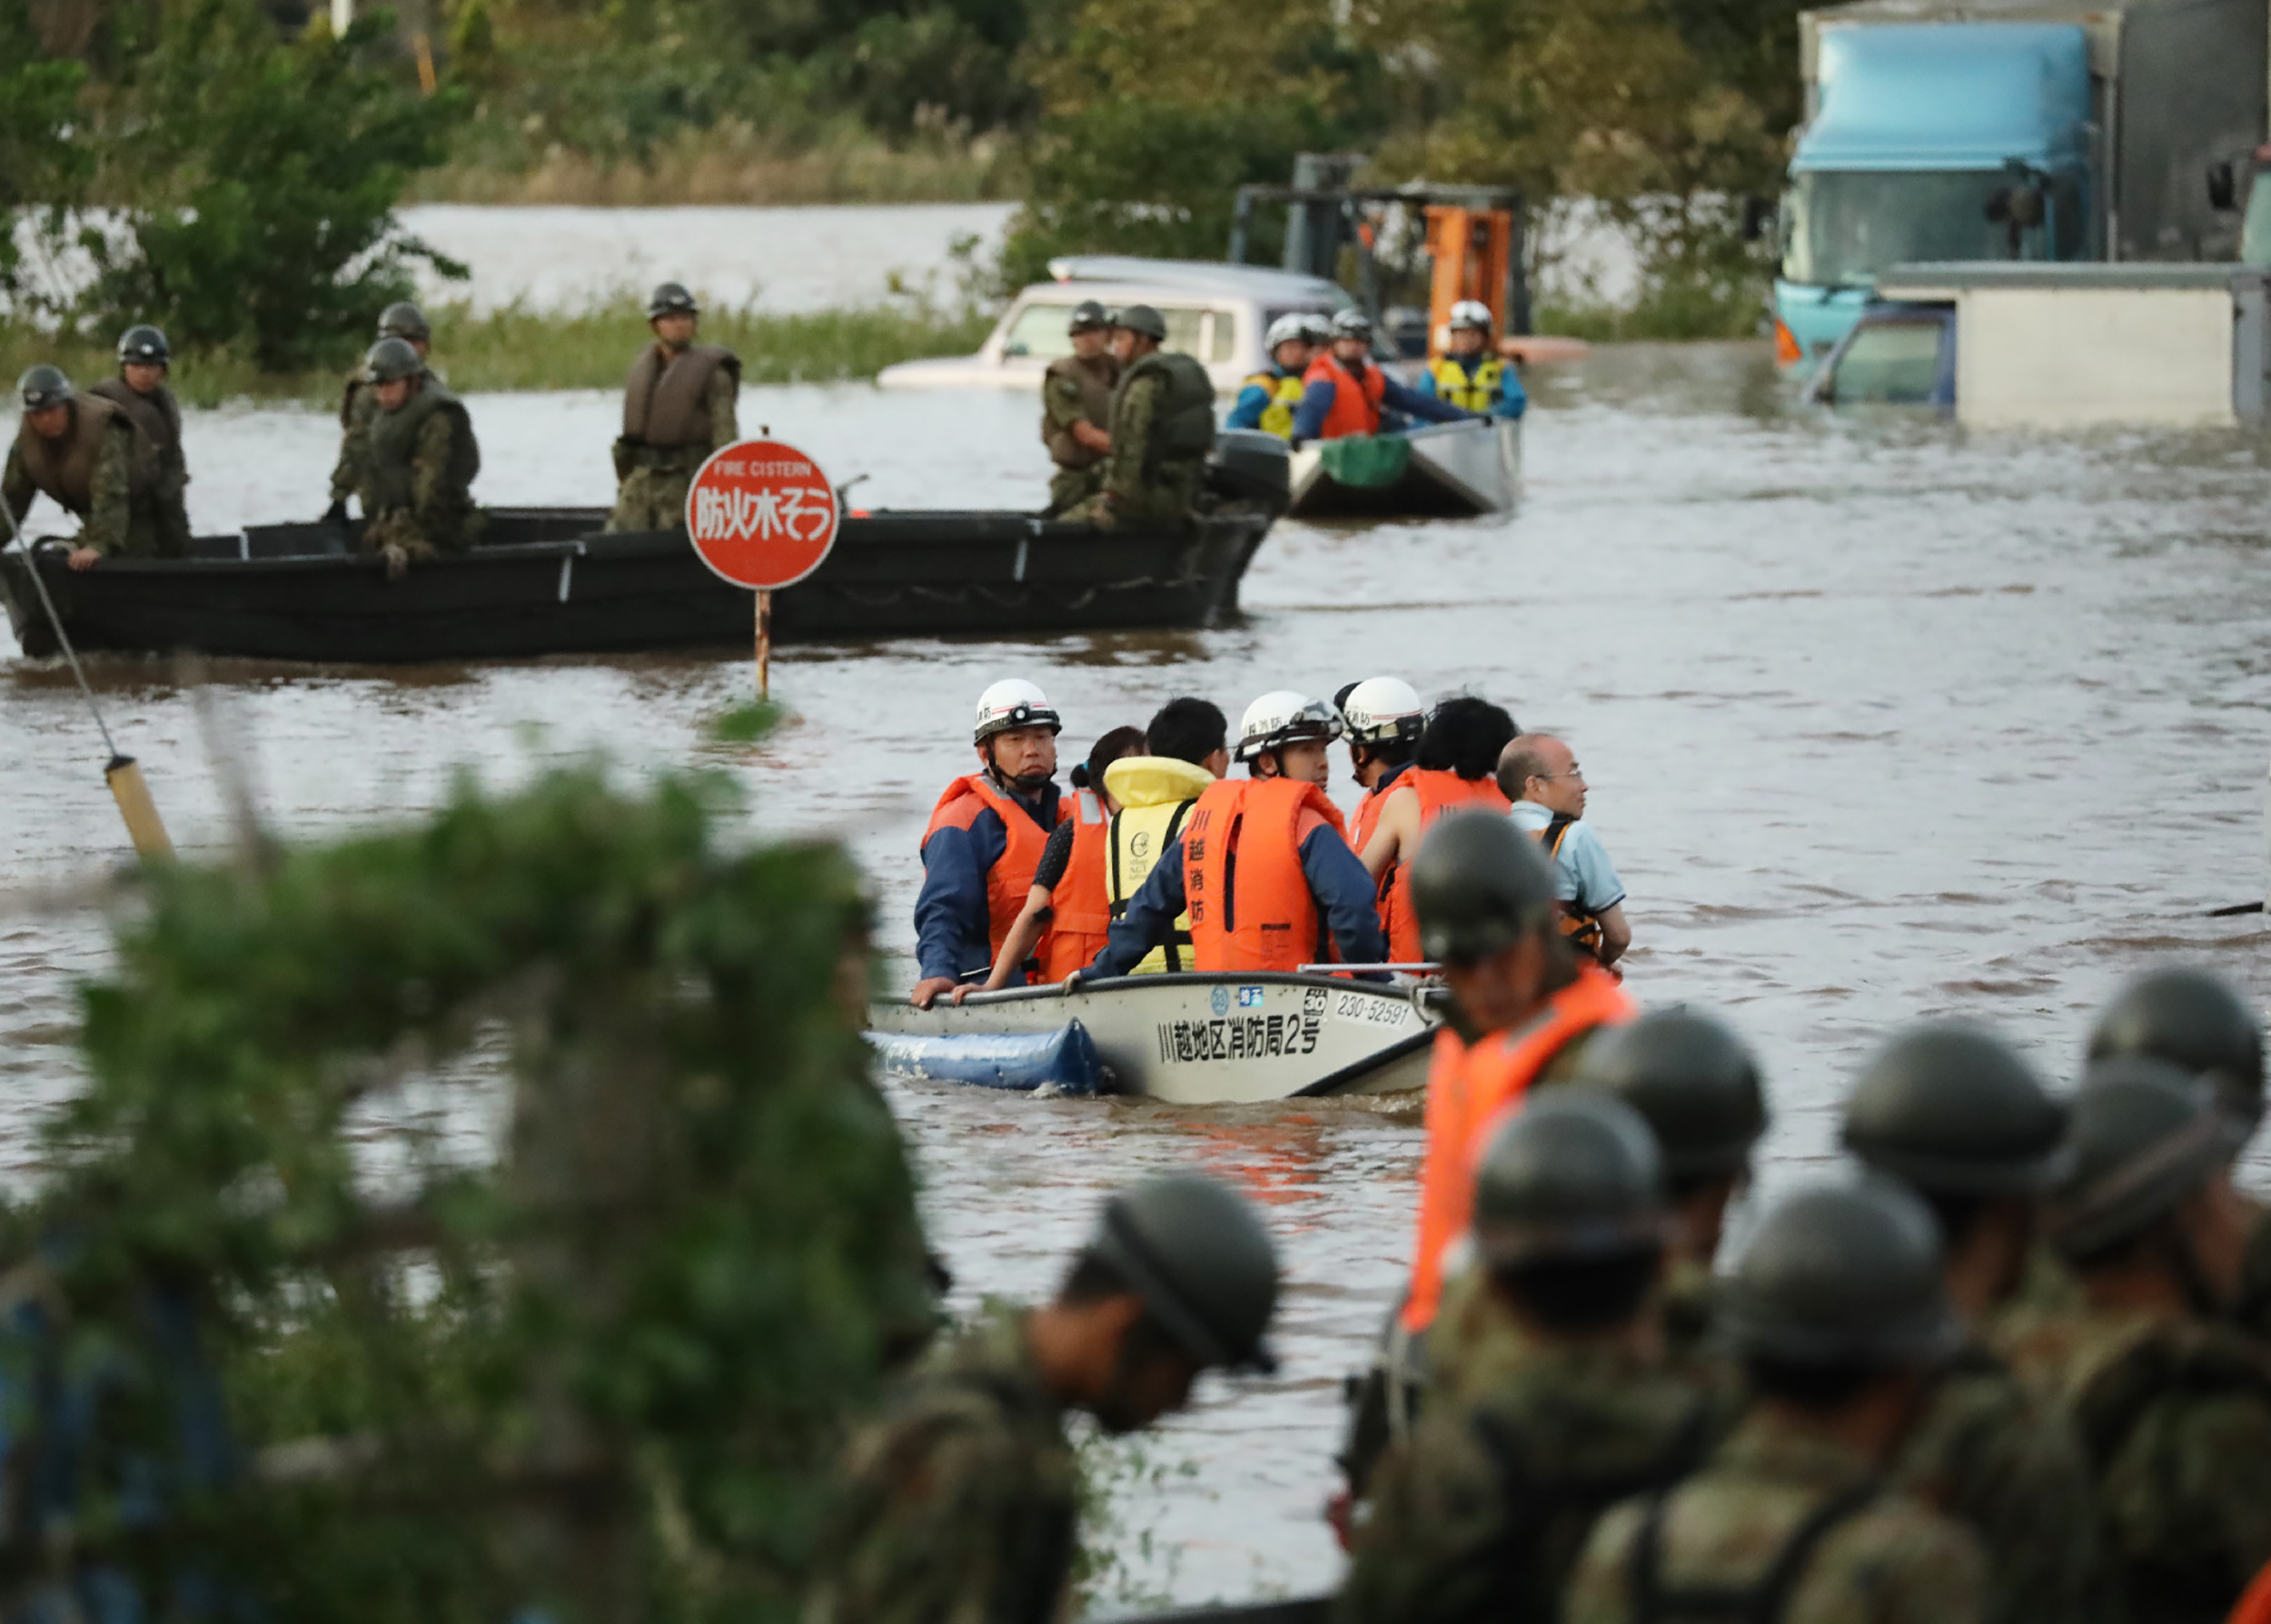 Fire department workers (C) evacuate residents from a flooded area in Kawagoe, Saitama prefecture on October 13, 2019, one day after Typhoon Hagibis swept through central and eastern Japan.